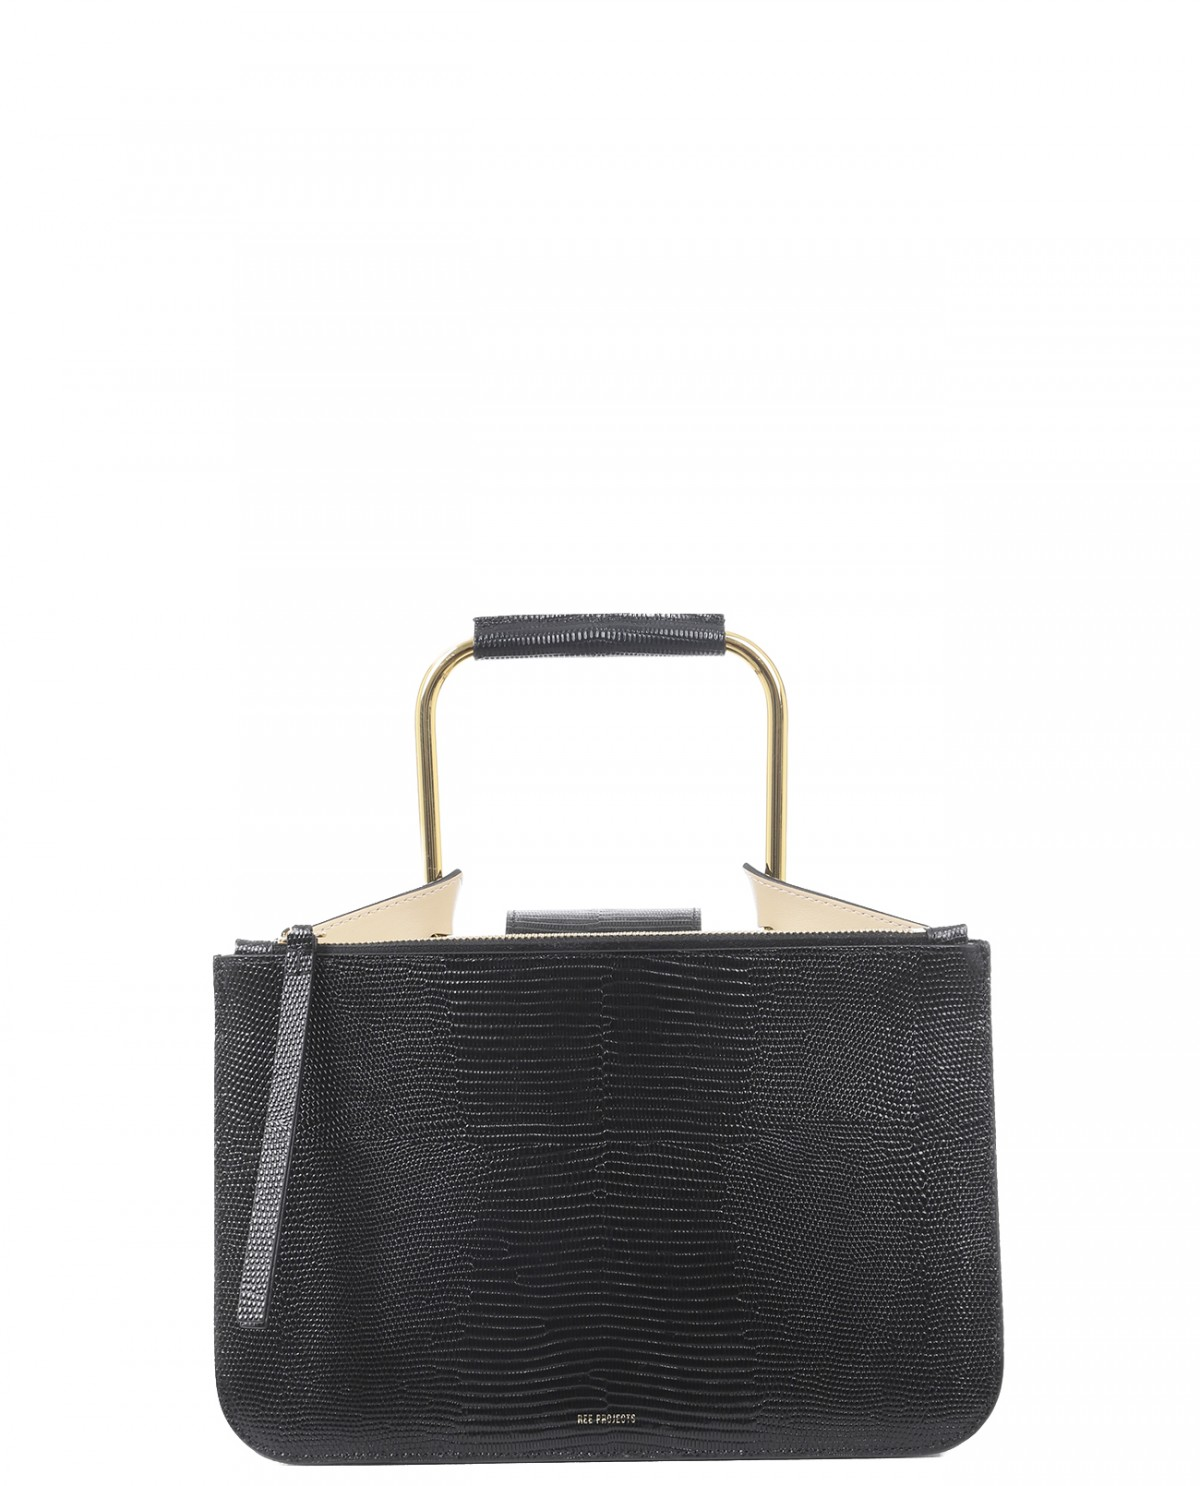 Ree Projects black lizard Tess bag